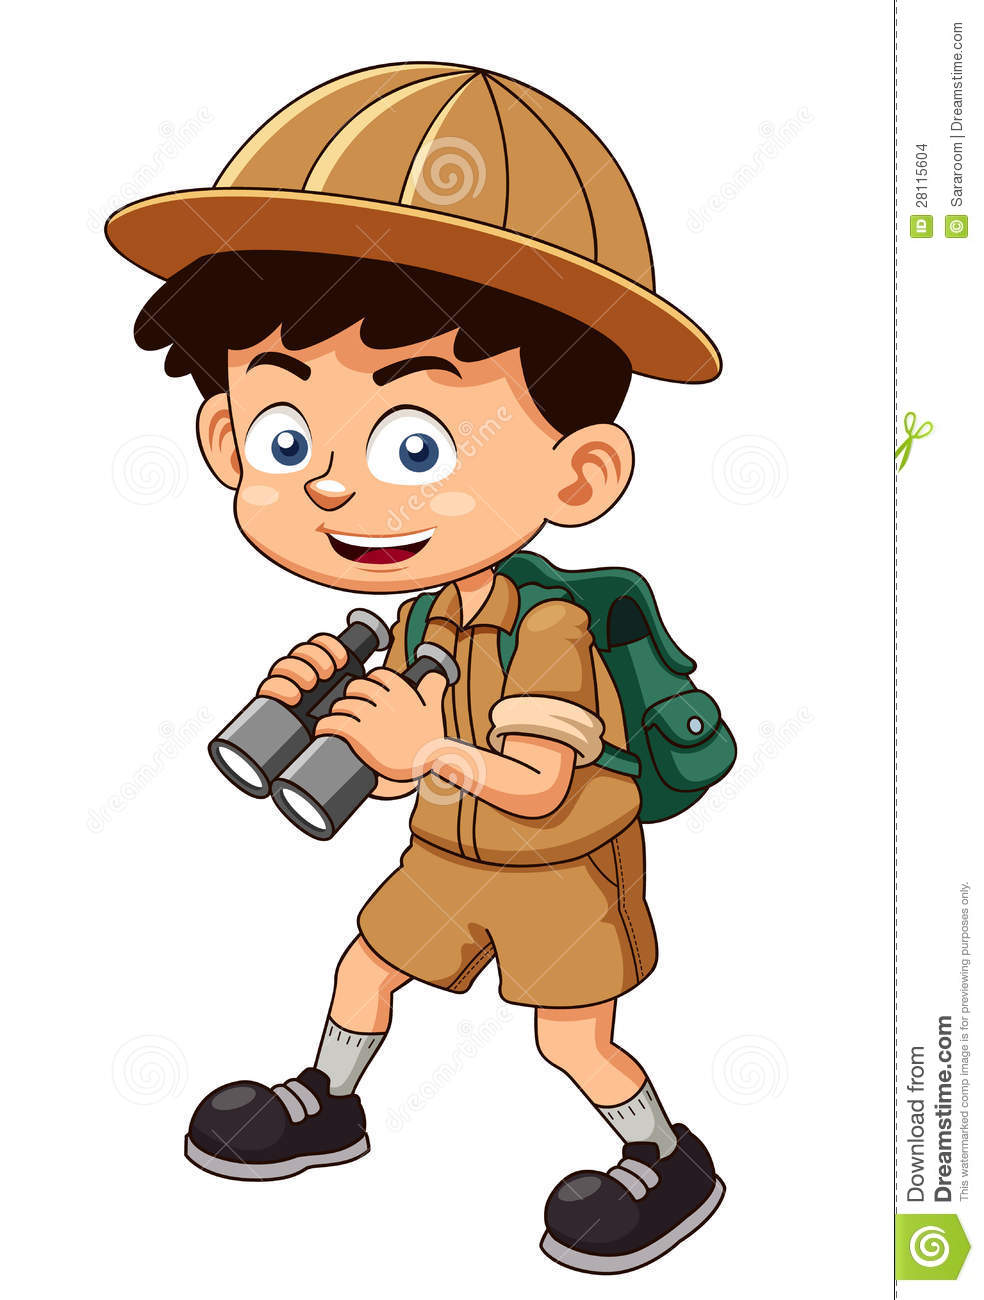 Boy Scout With Binoculars Stock Images - Image: 28115604